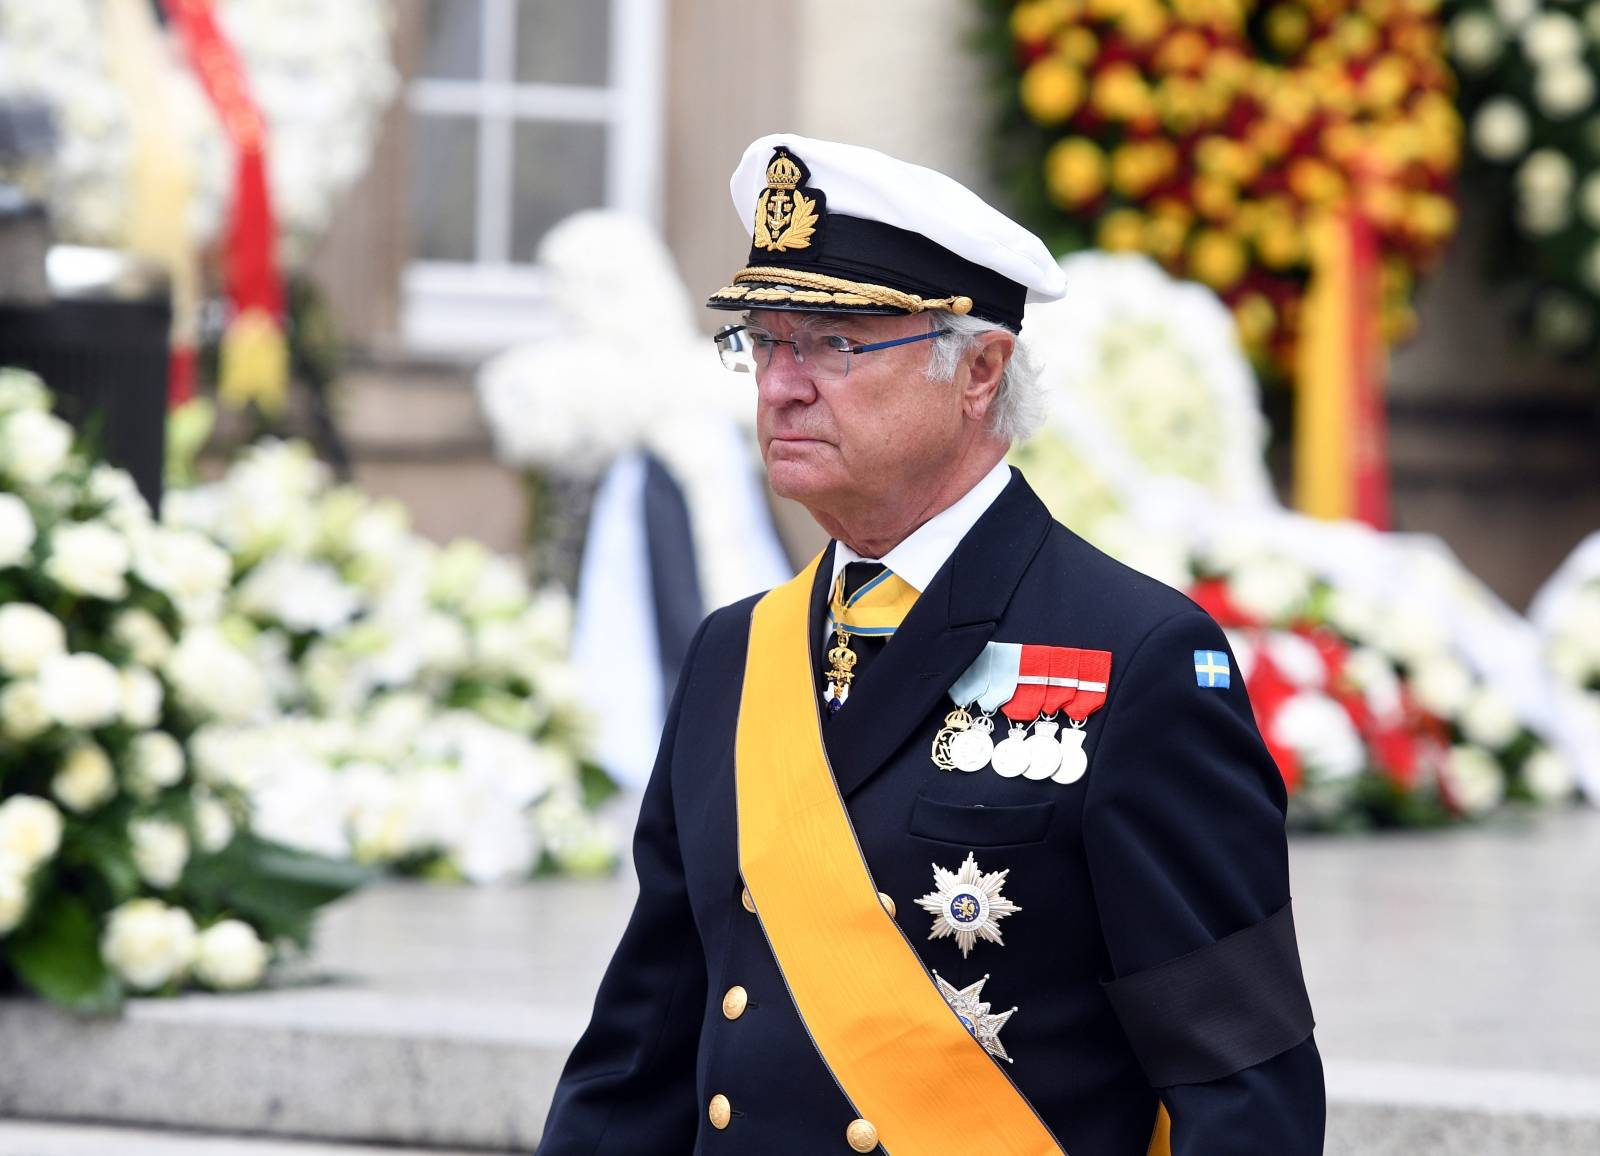 Burial of Luxembourg's Old Grand Duke Jean